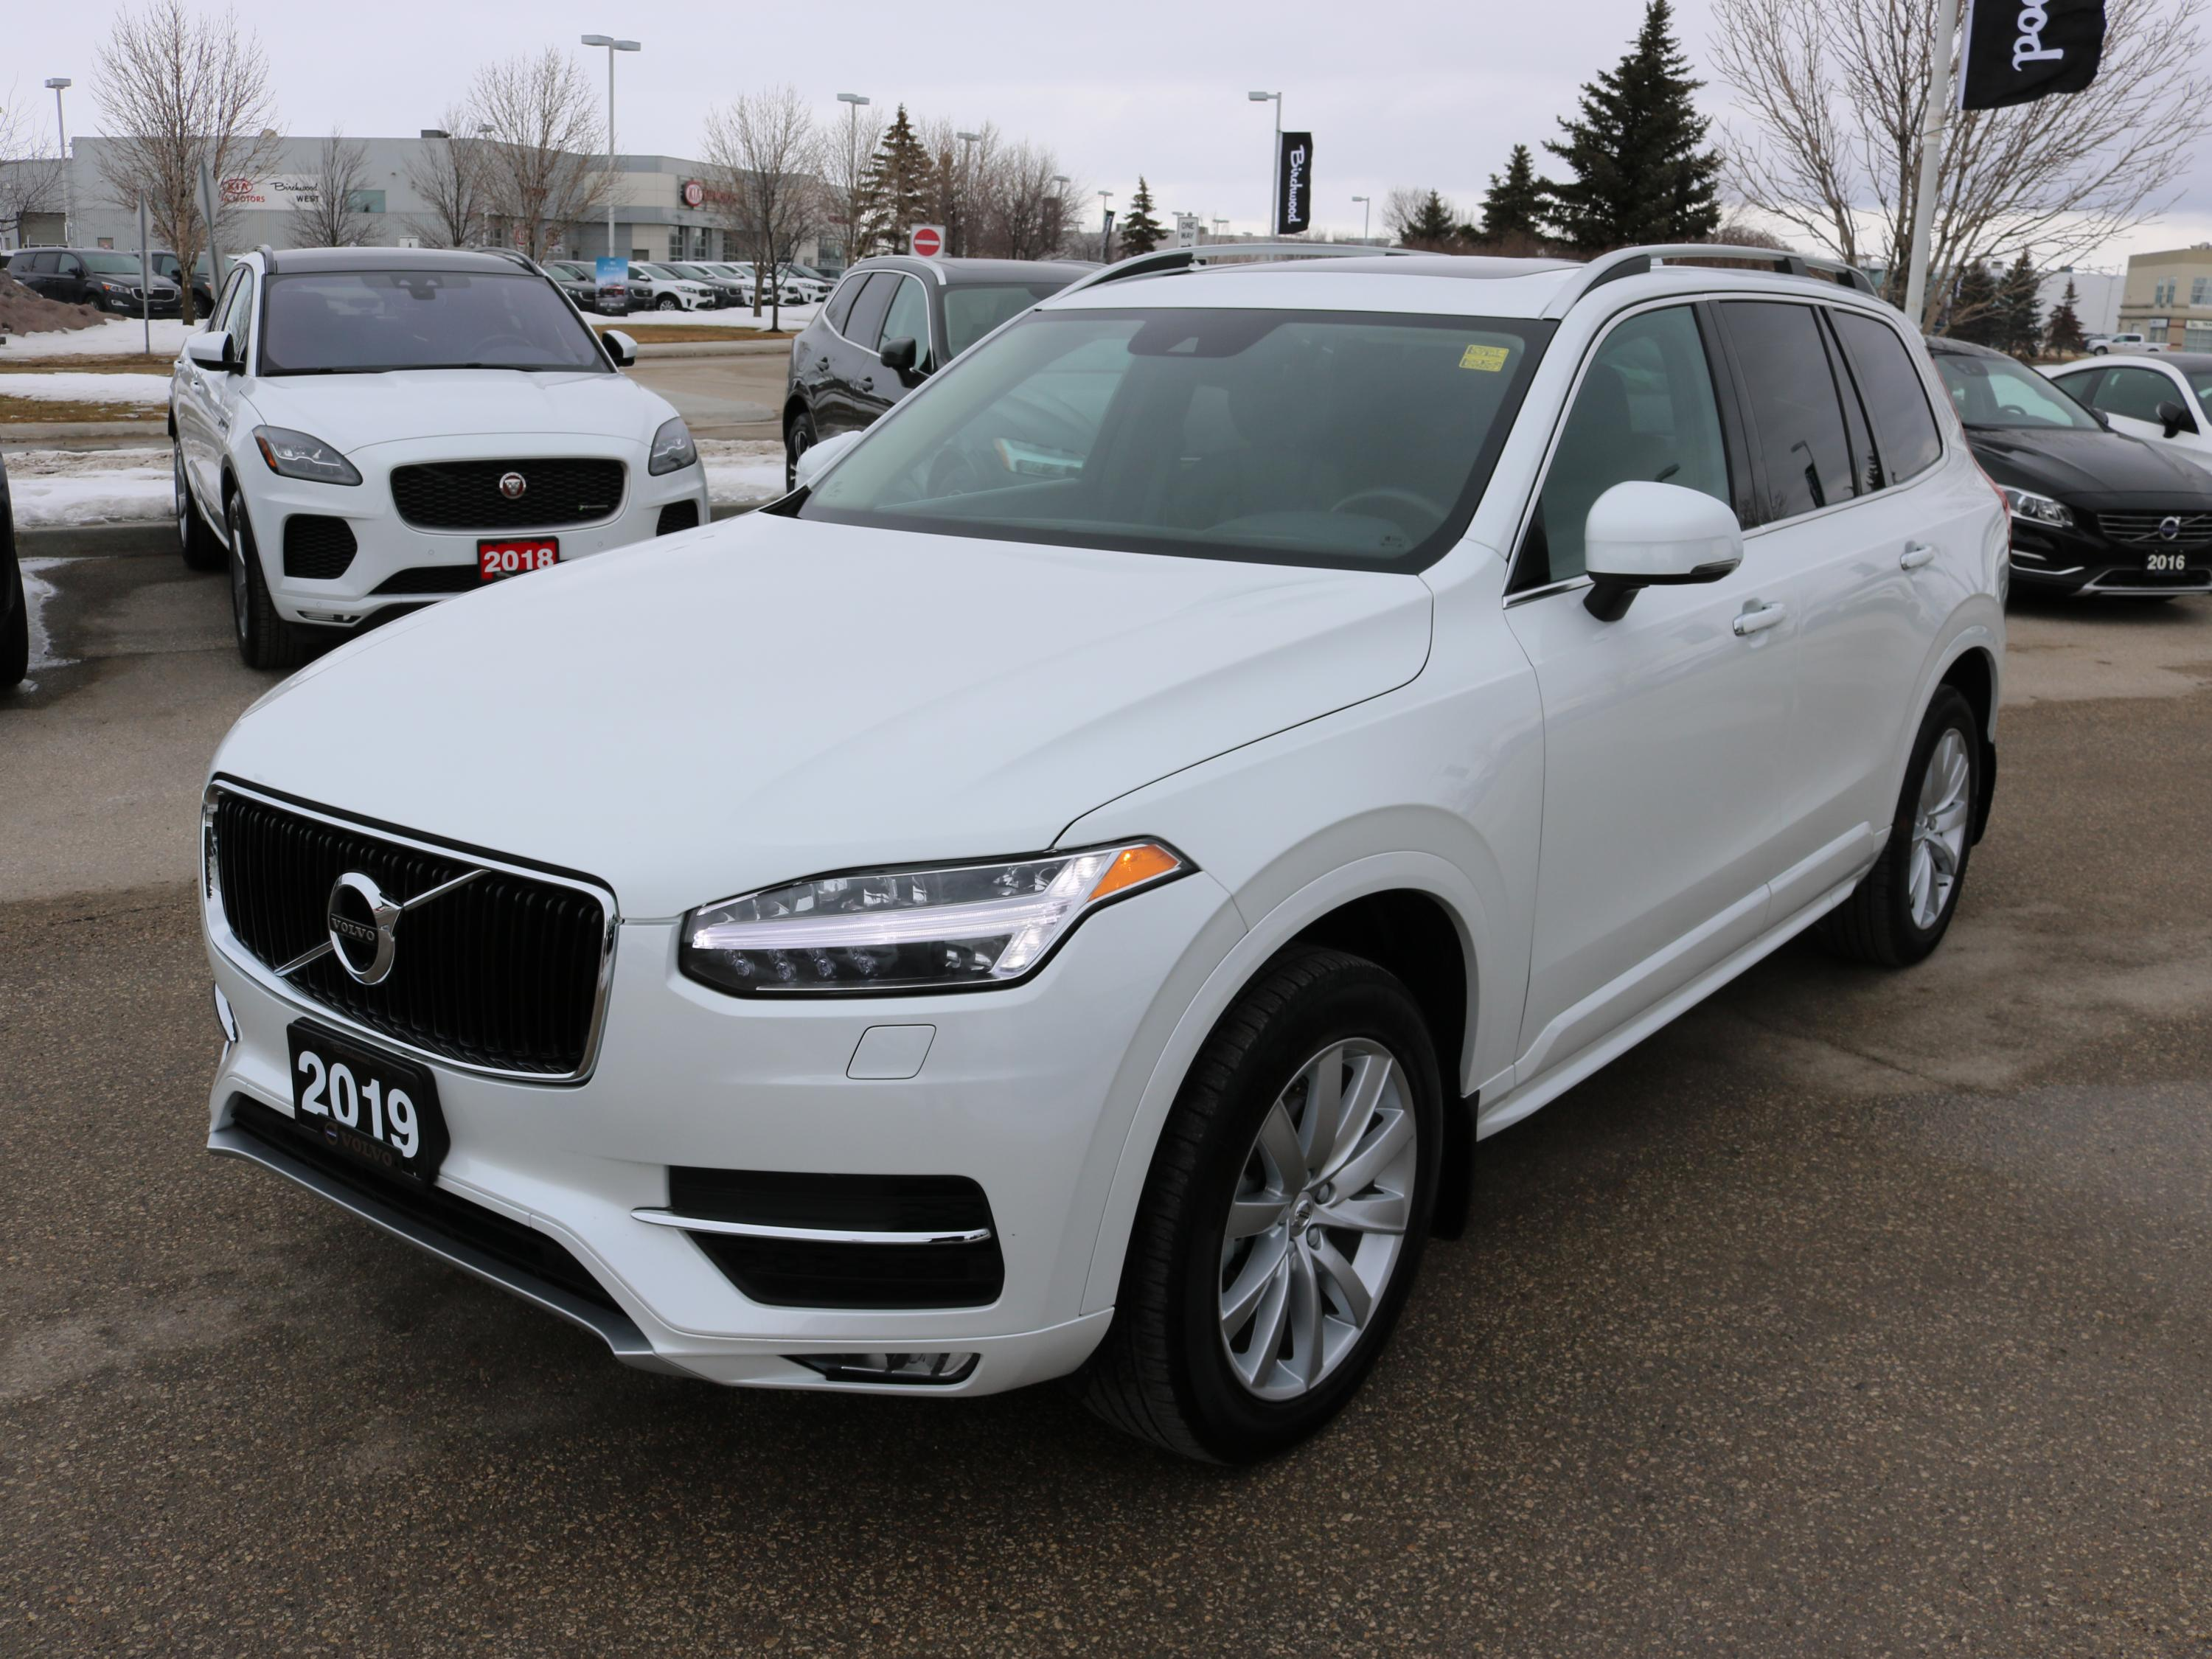 Pre-Owned 2019 Volvo XC90 Momentum May Special: No Payments For 6 Months oac